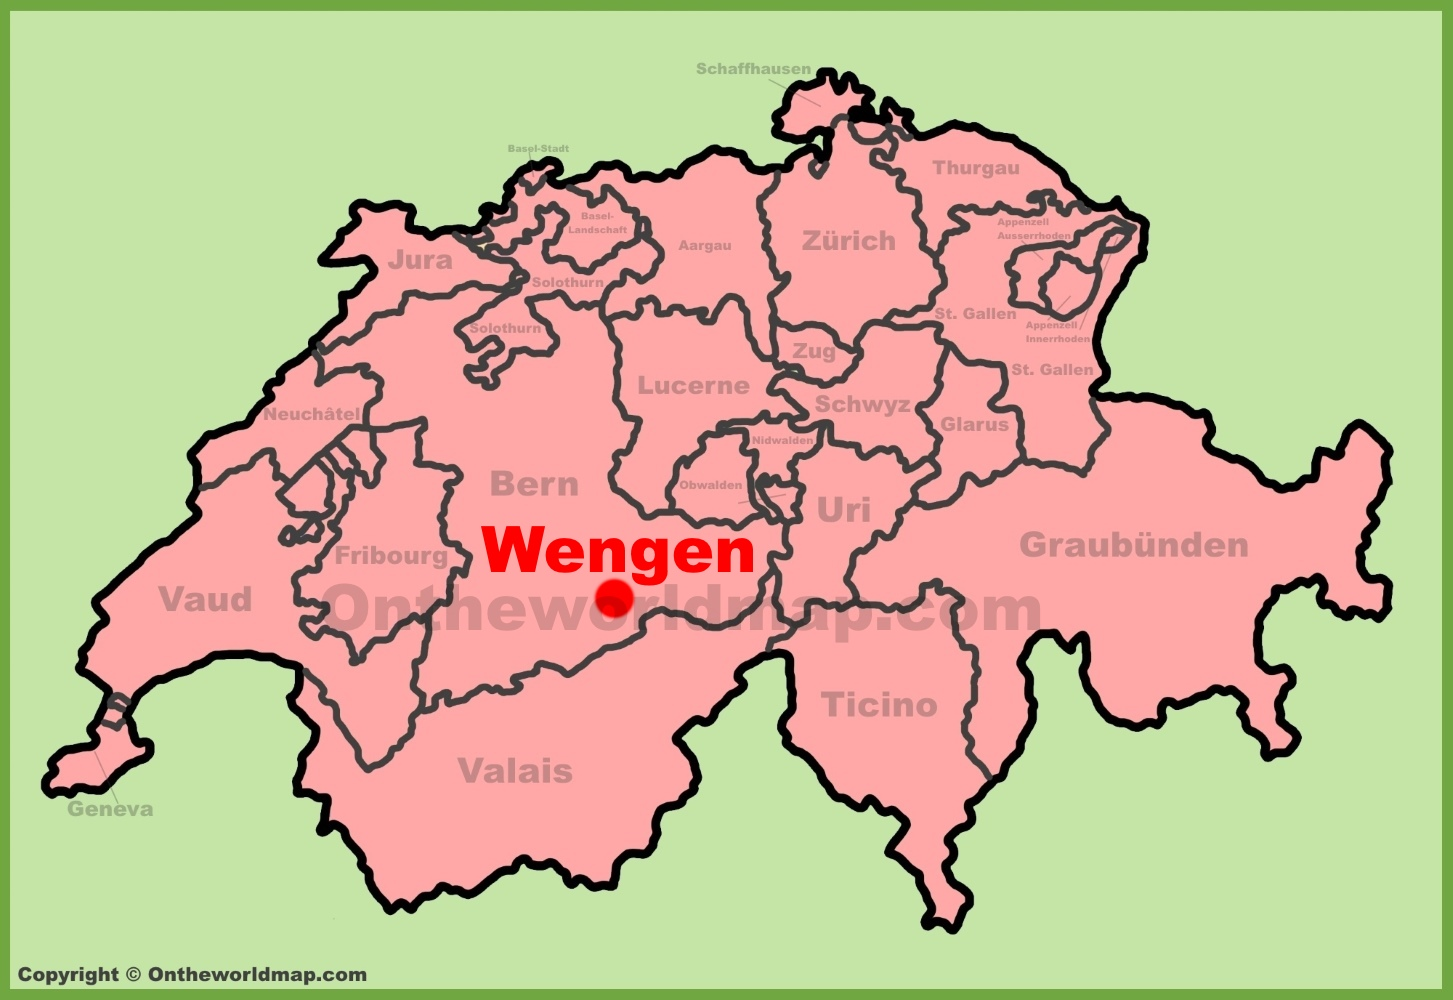 Wengen location on the Switzerland map